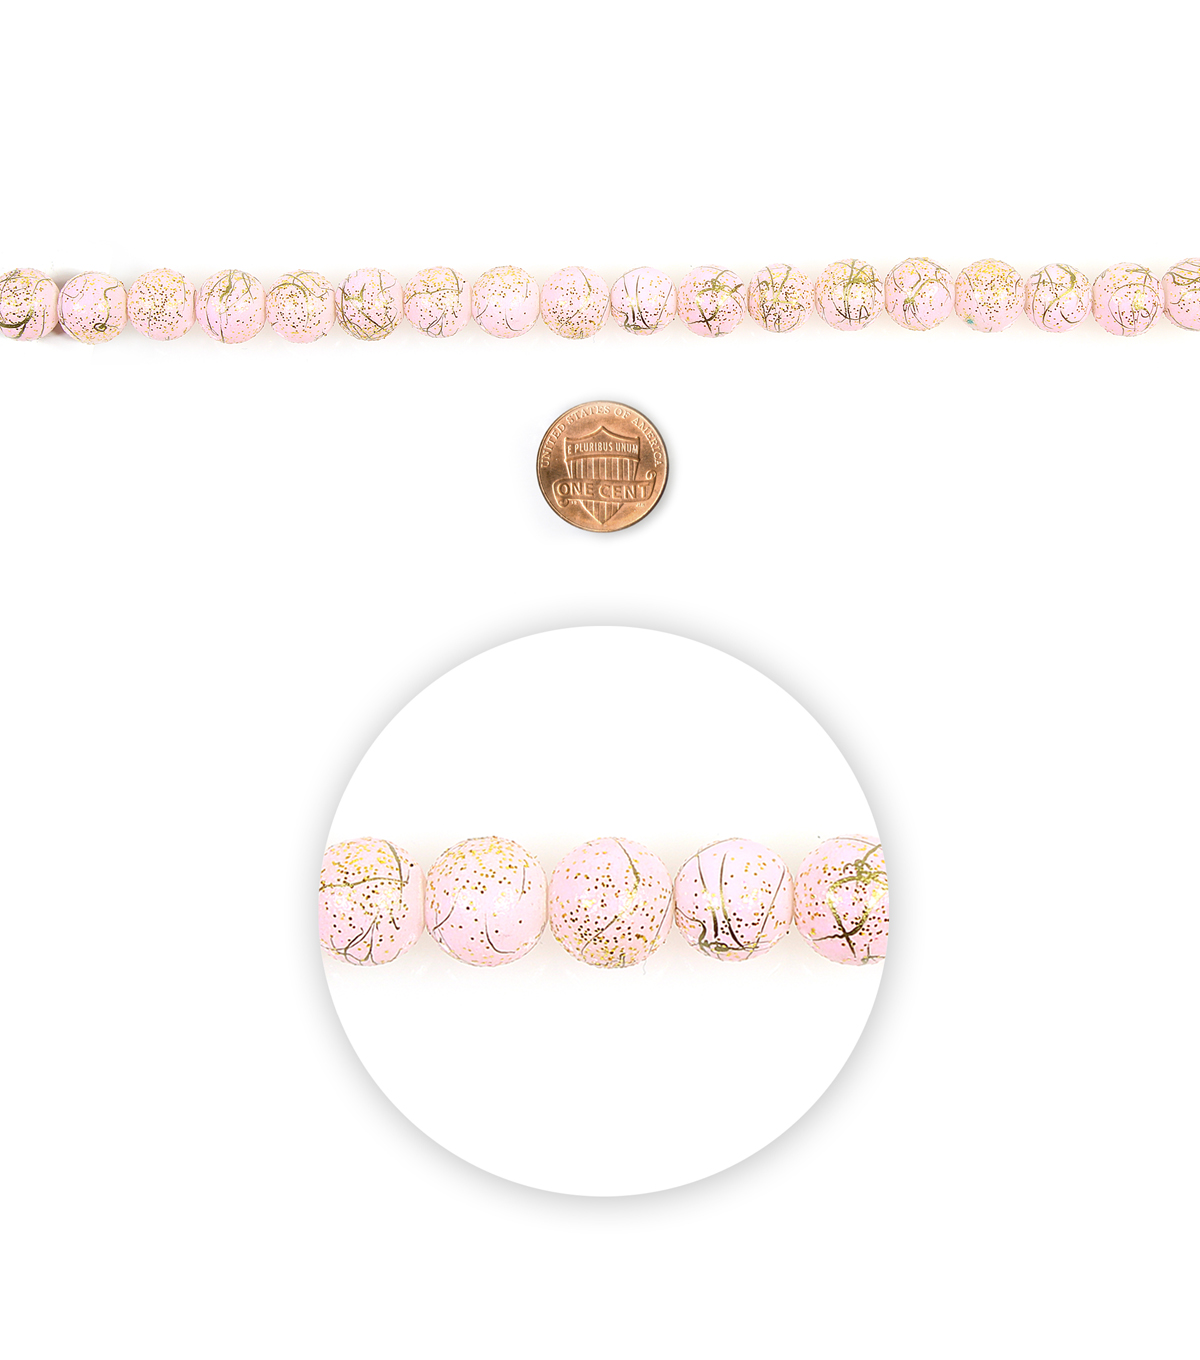 Blue Moon Beads 7\u0022 Strand Glass Bead 10mm Glitter Pink Gold